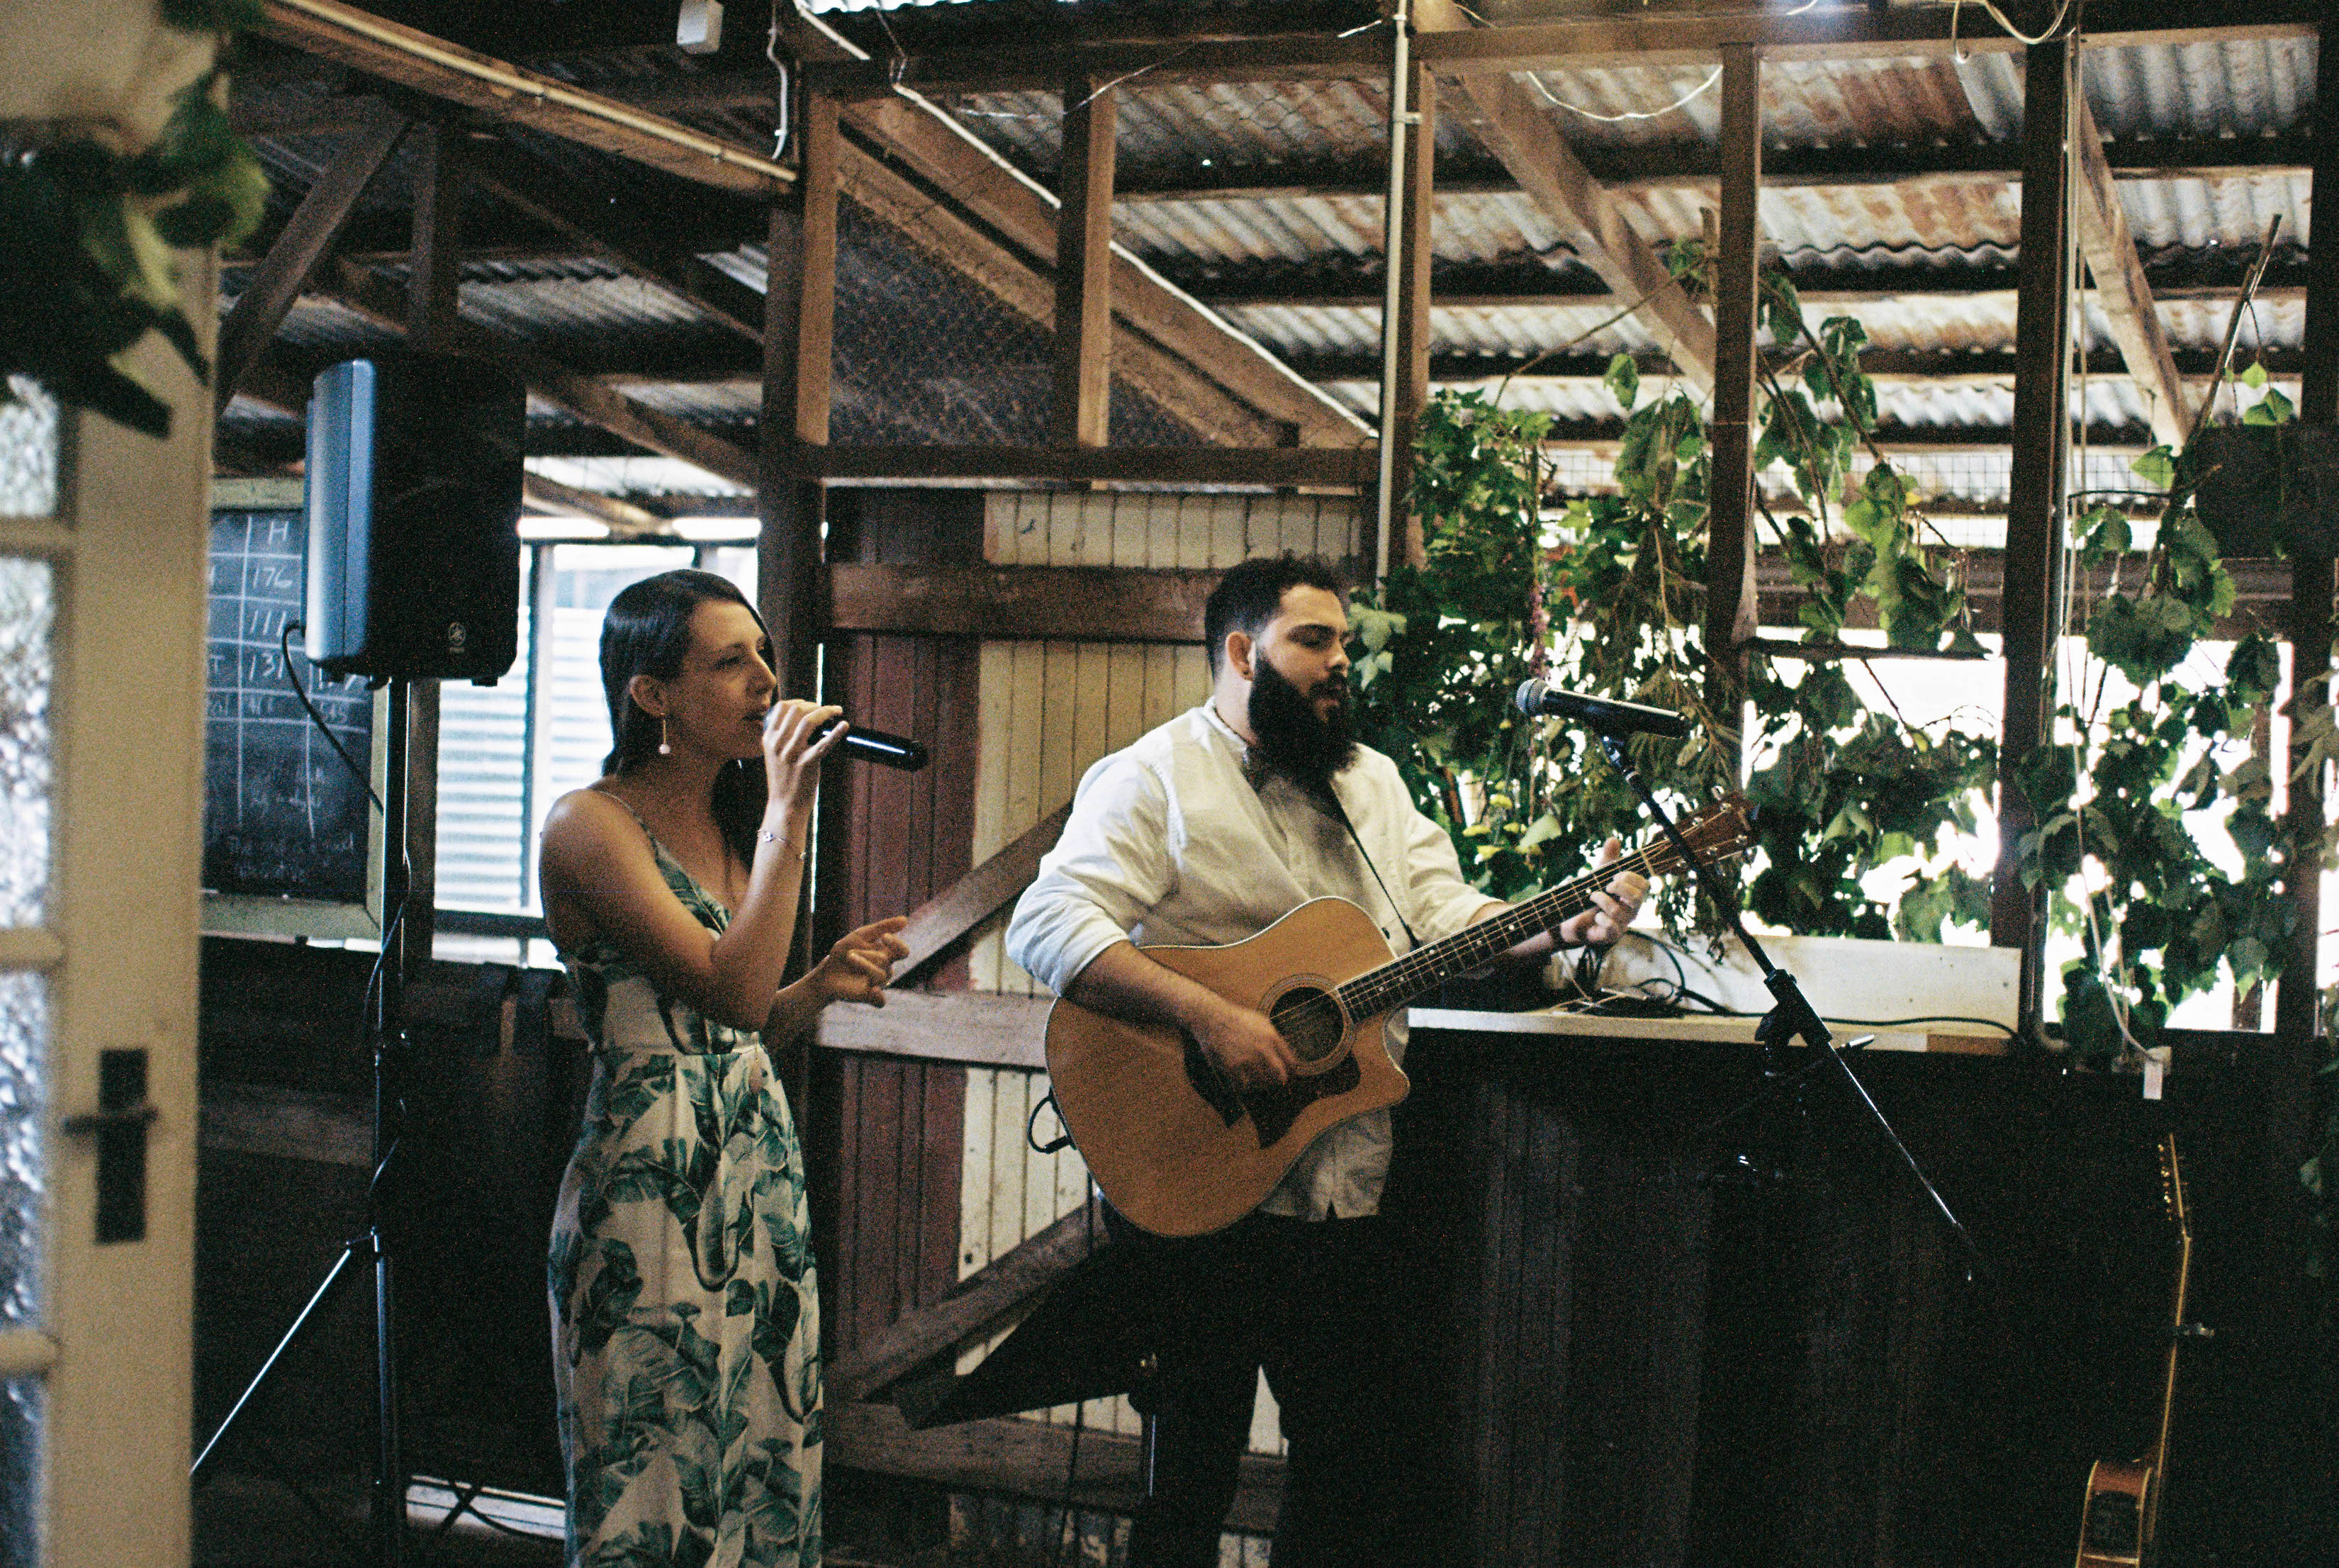 Live music plays during a barn wedding ceremony in Australia'a countryside.